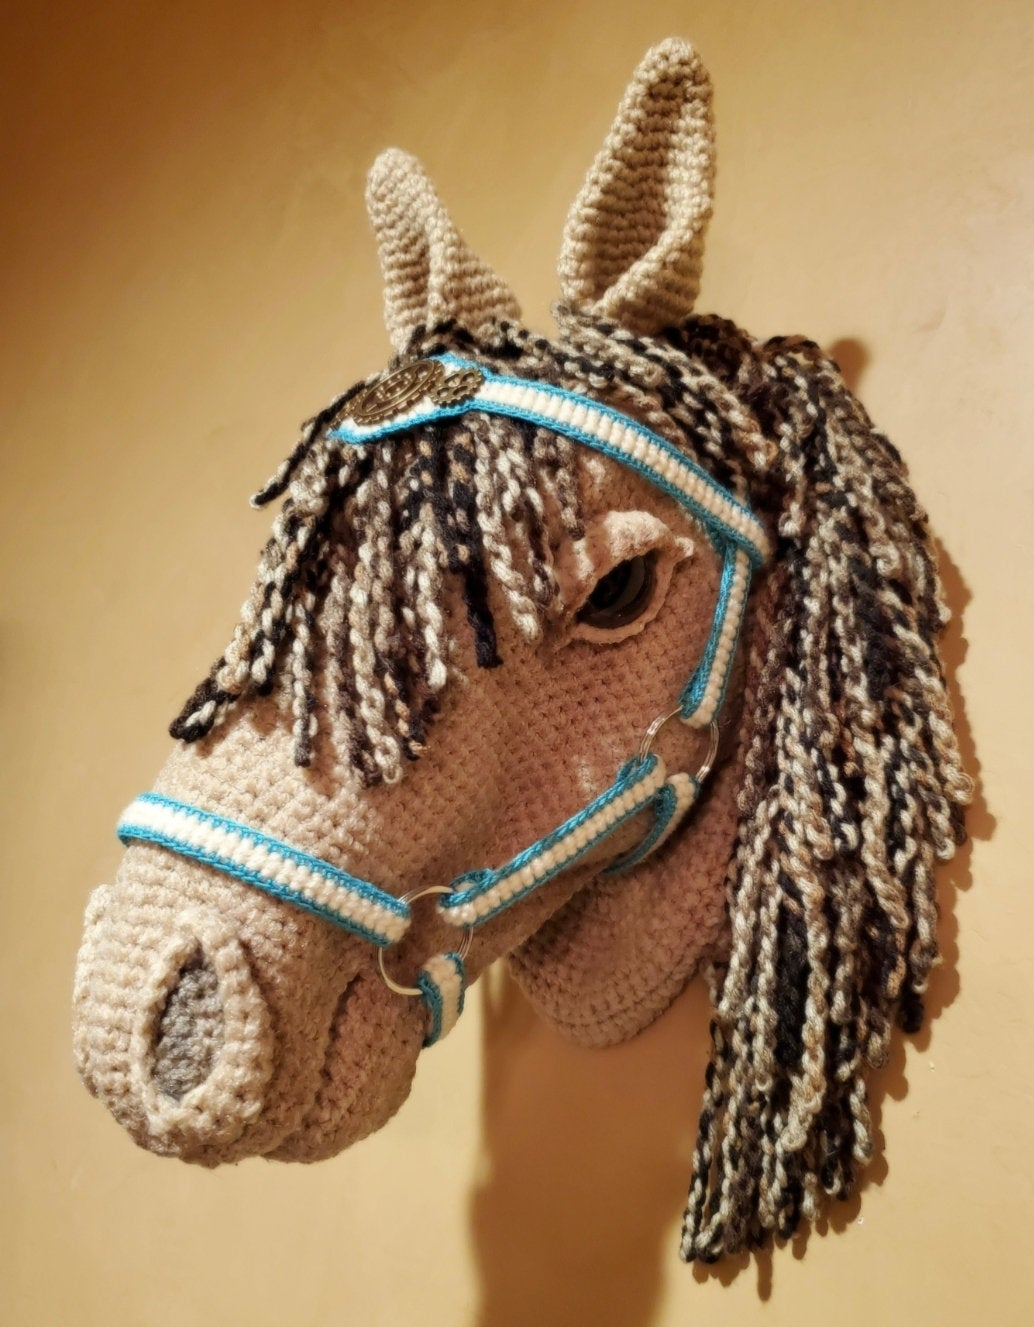 Crochet a Horse Head Wall Sculpture ... For Fans of Fauxidermy